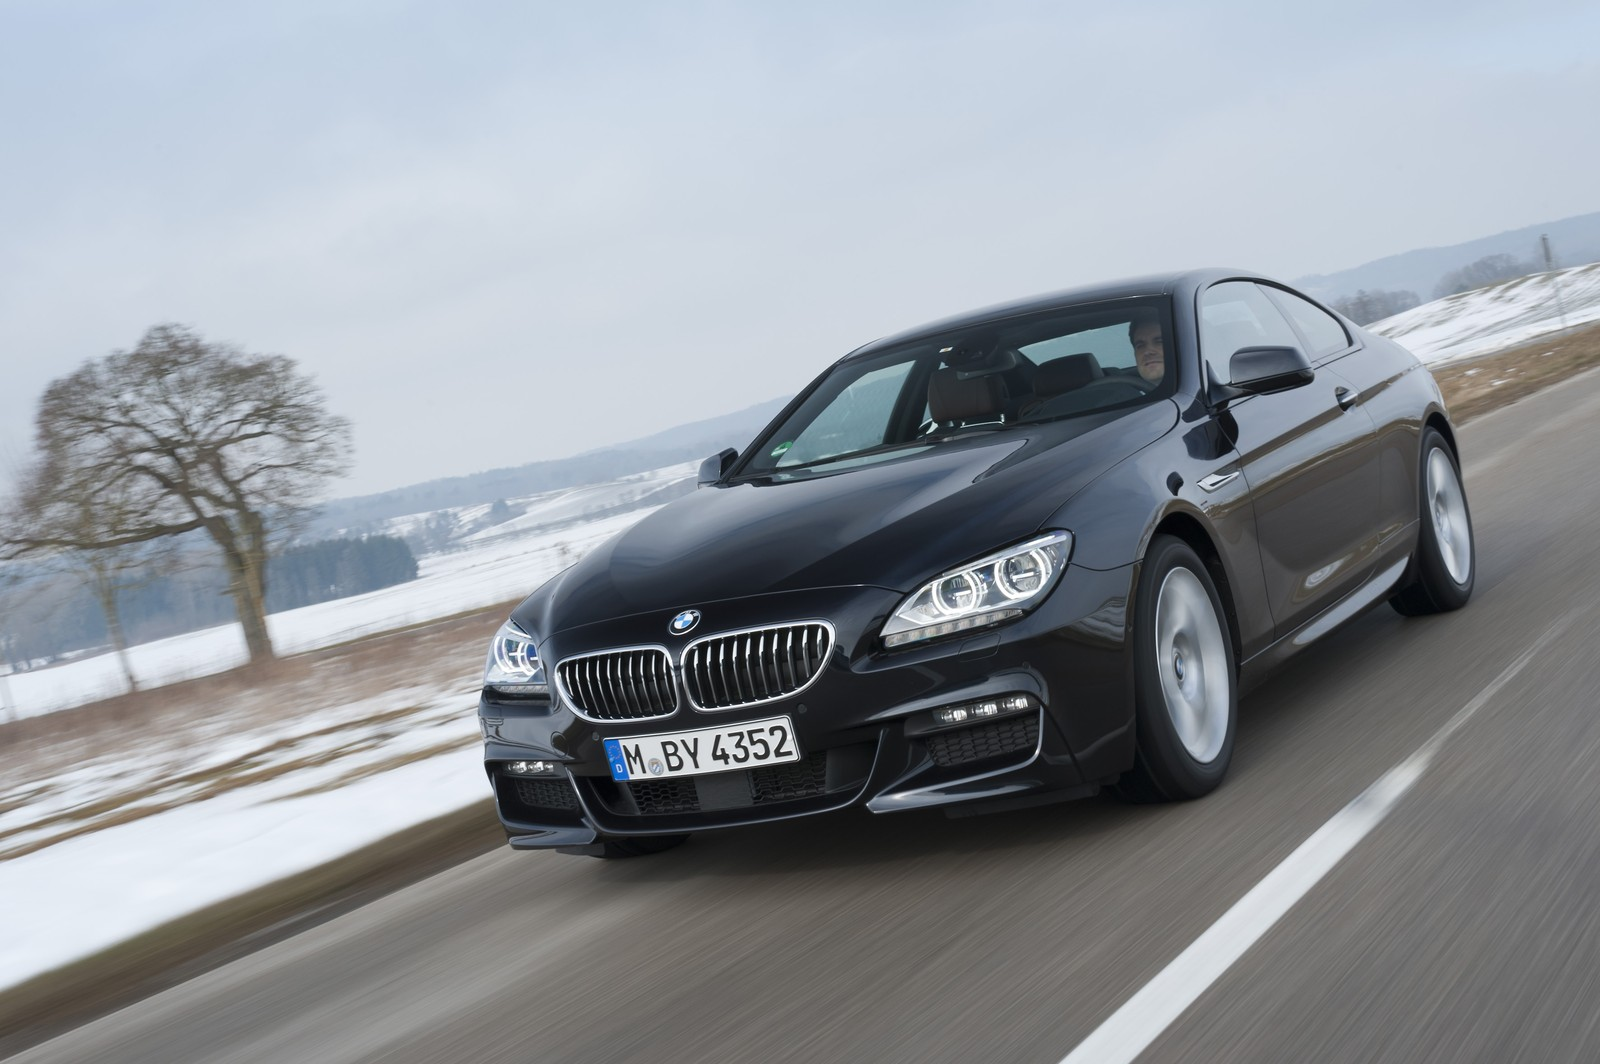 2019 BMW 640d xDrive Coupe photo - 4